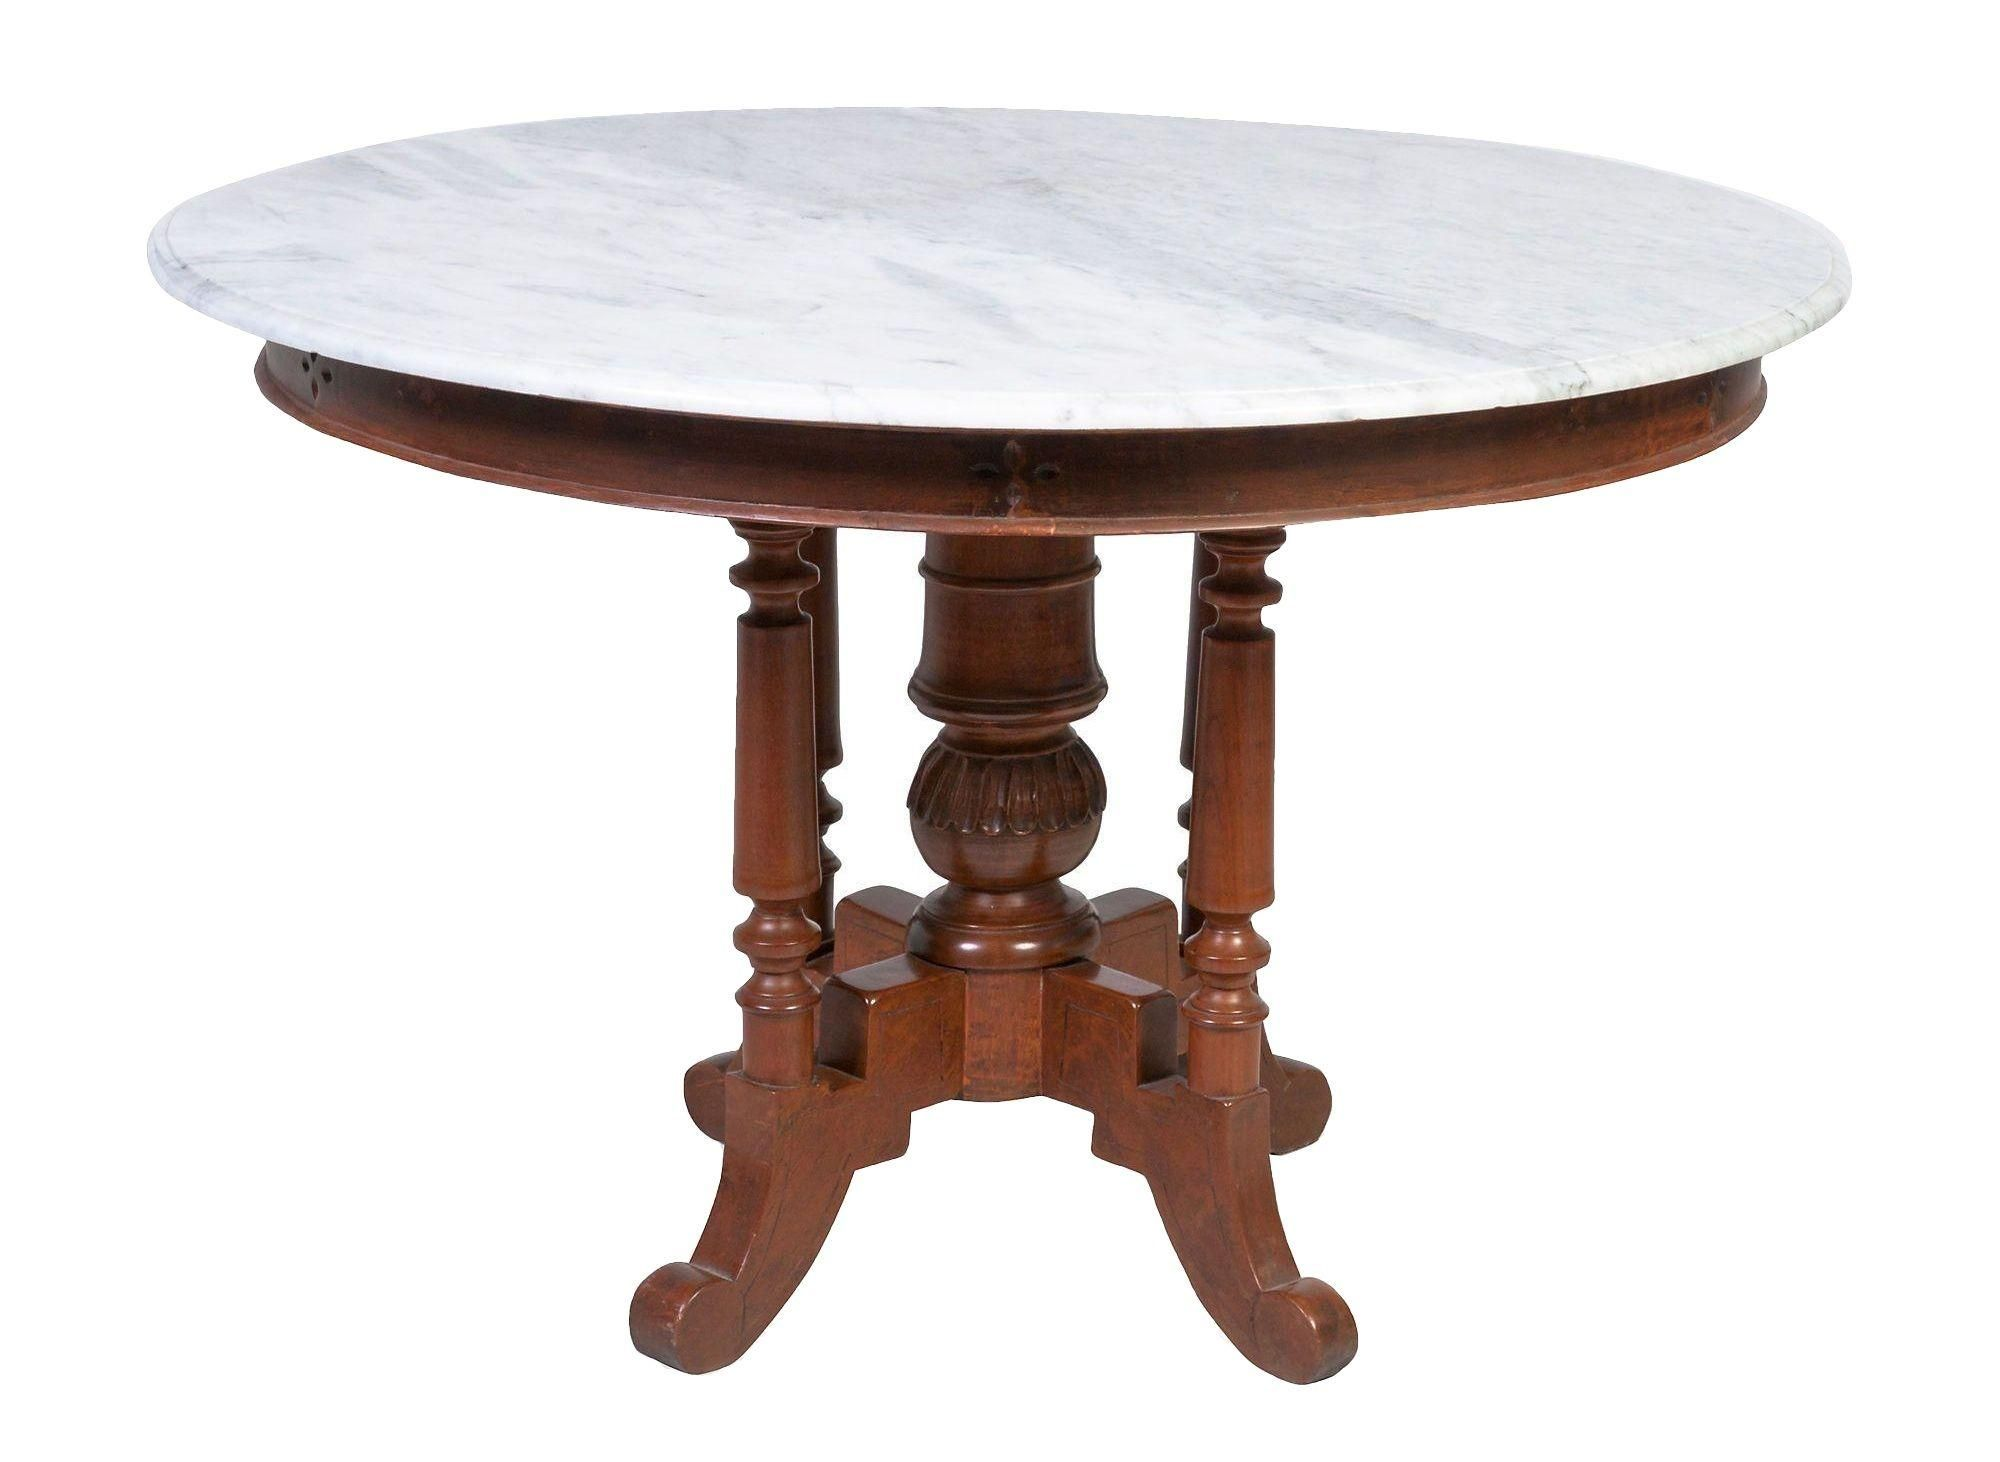 A vintage round dining table with a fabulous white marble ...